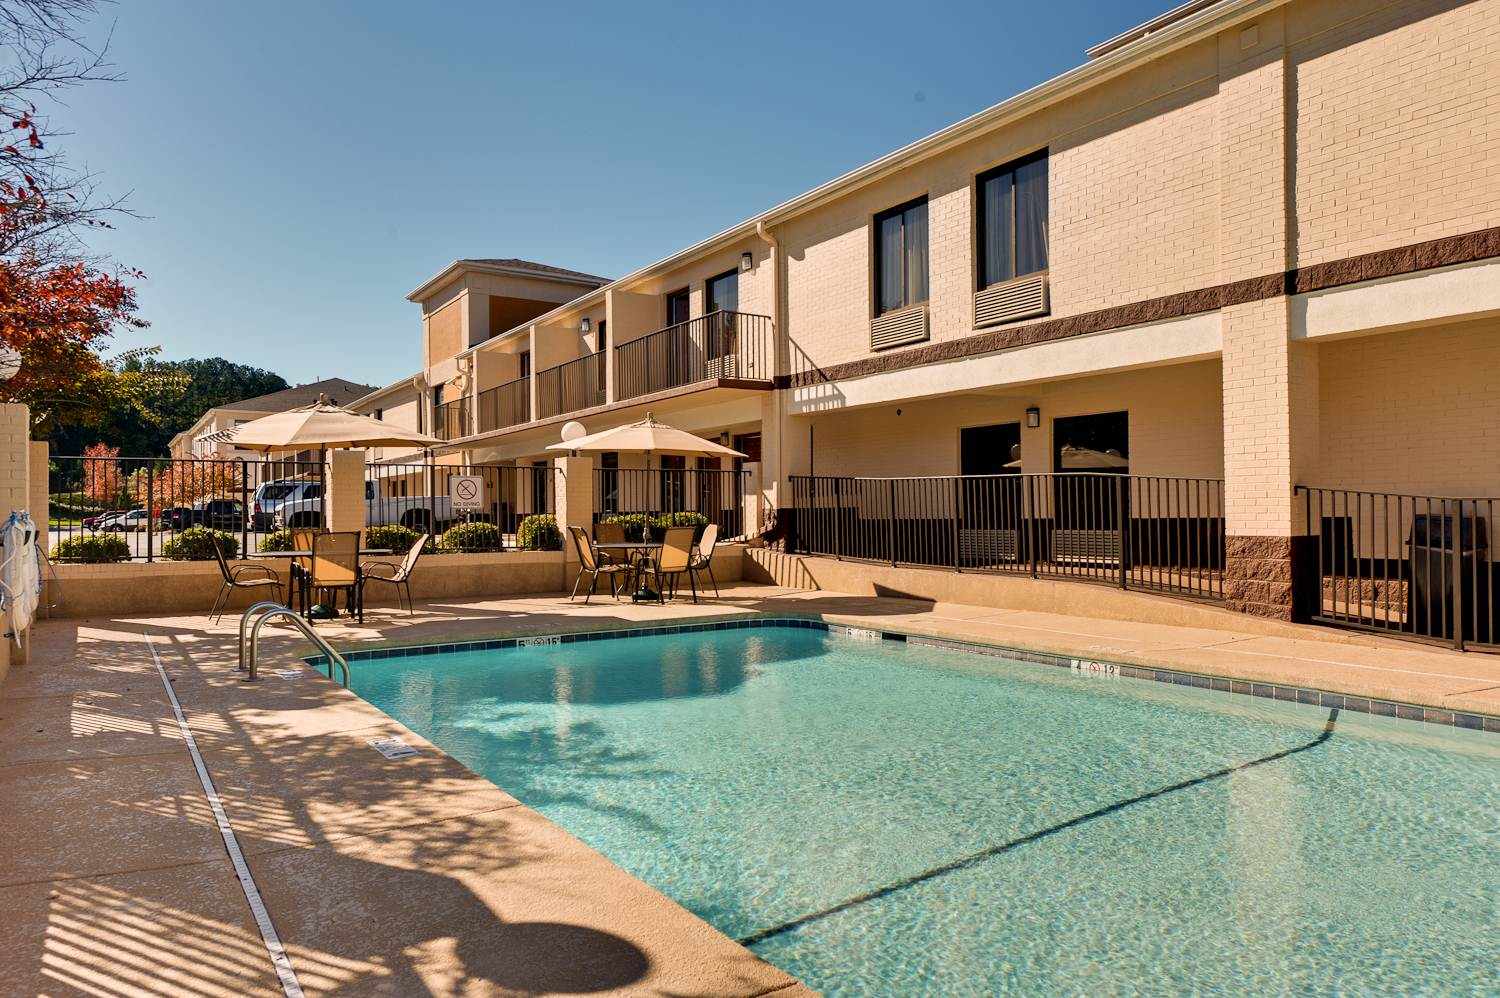 Quality Inn,free wifi,full breakfast,guest laundry,gym,meeting spaces,pool